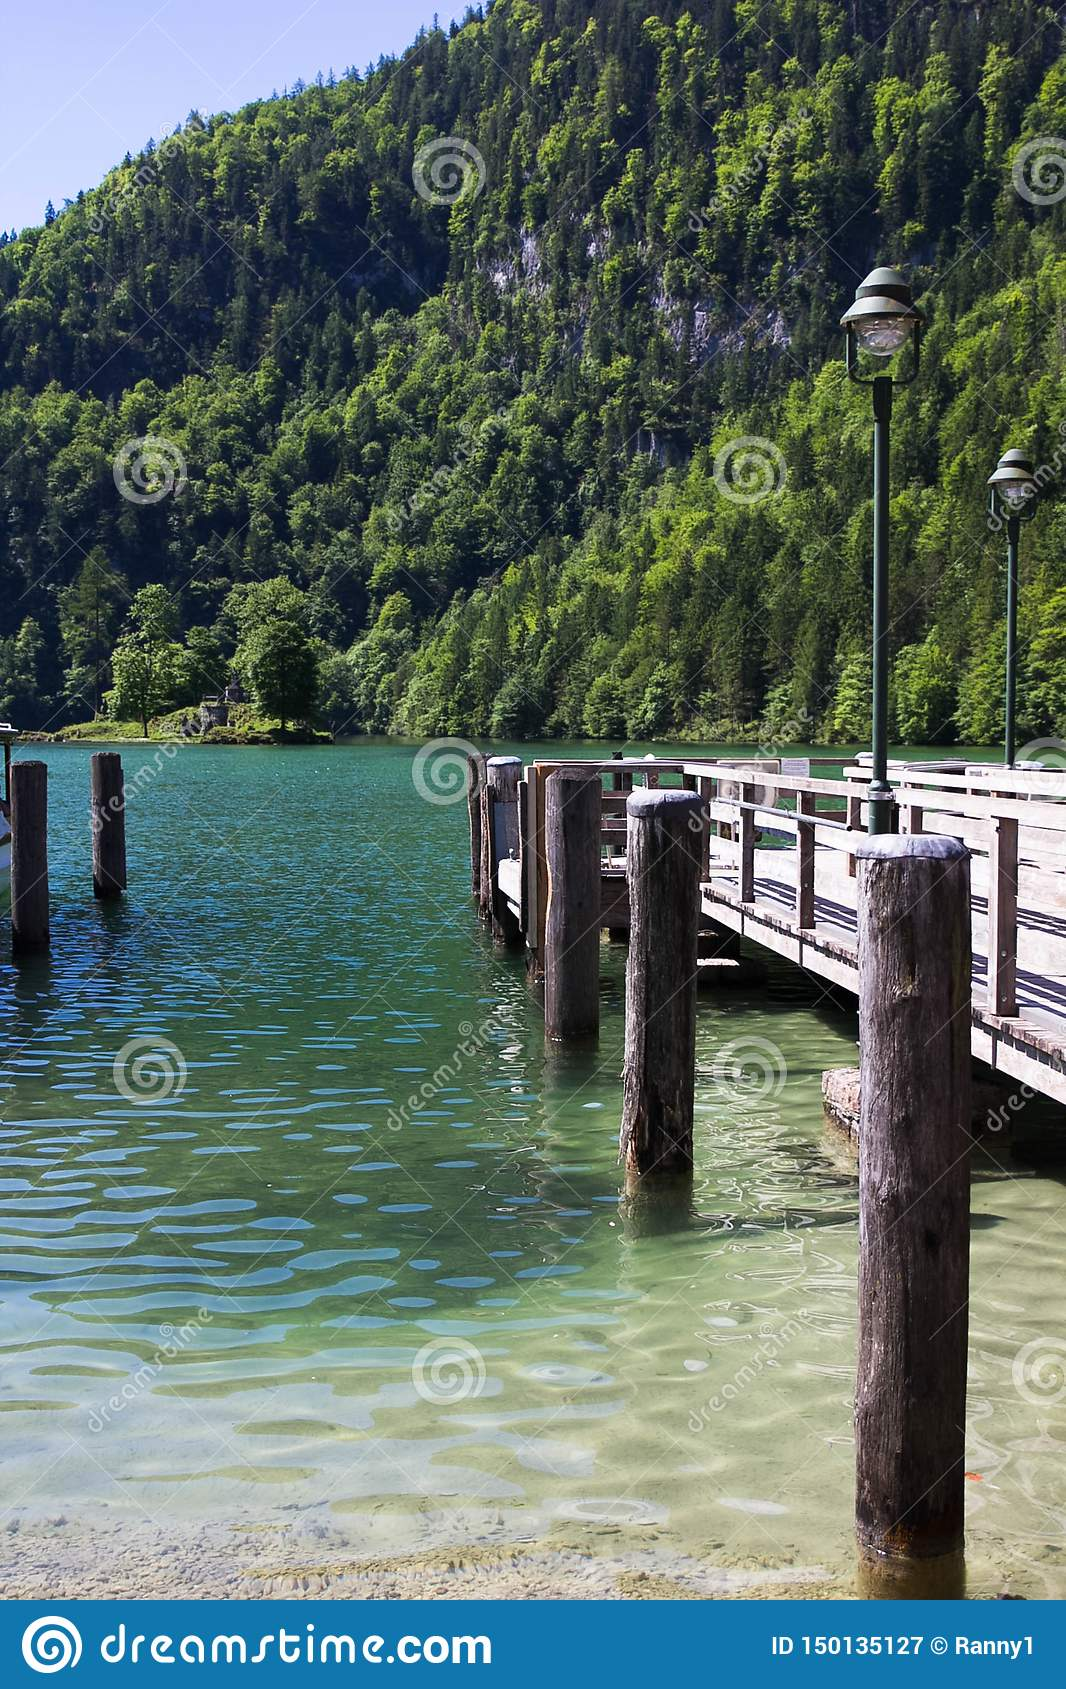 Wooden pier on a lake in the Alps in spring against the backdrop of mountains